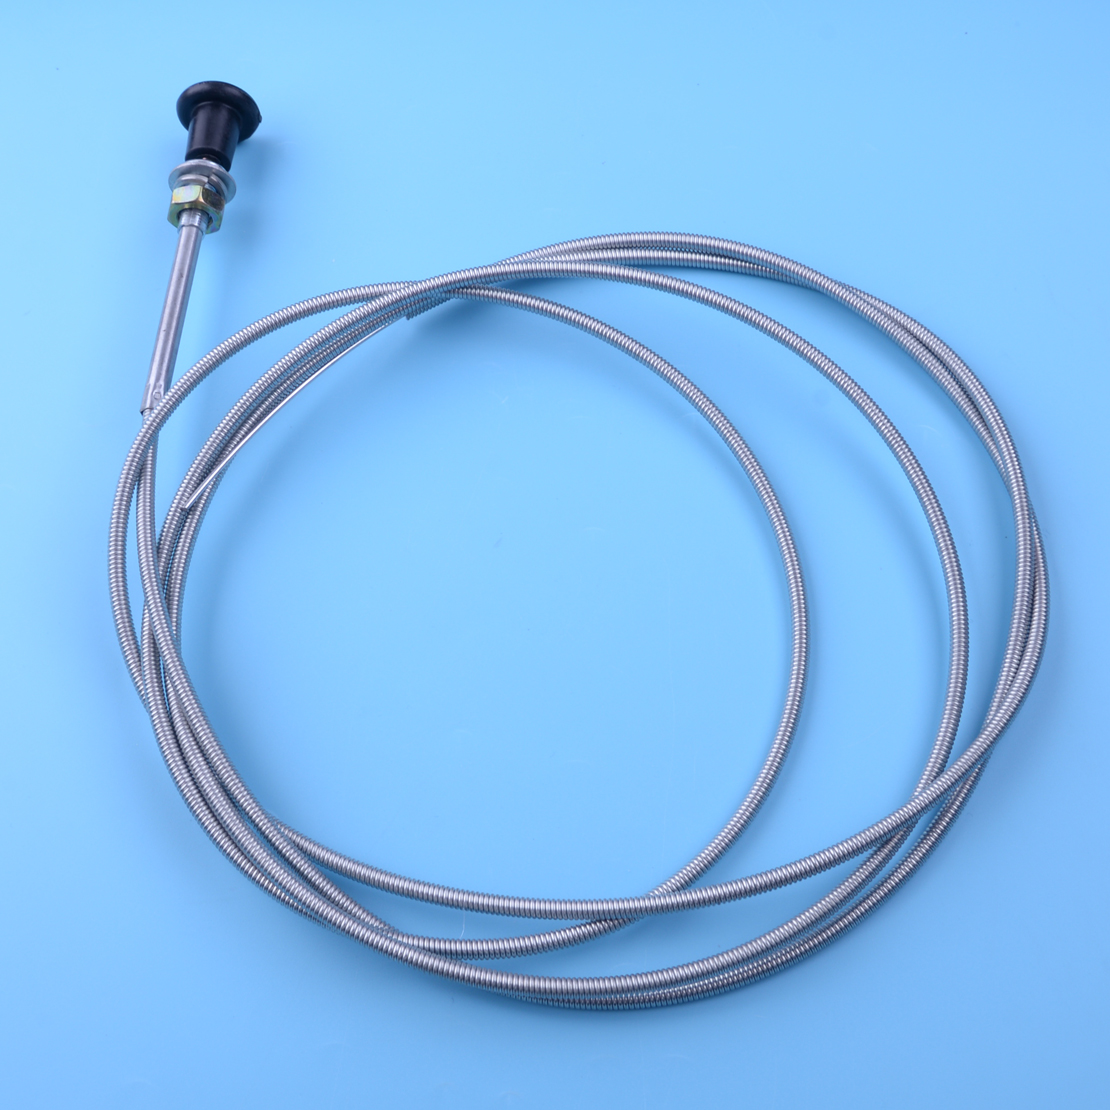 LETAOSK Silver Universal 8 FT. Carburetor Choke Cable 96 Inch Long For Tractor Mower 60122LETAOSK Silver Universal 8 FT. Carburetor Choke Cable 96 Inch Long For Tractor Mower 60122